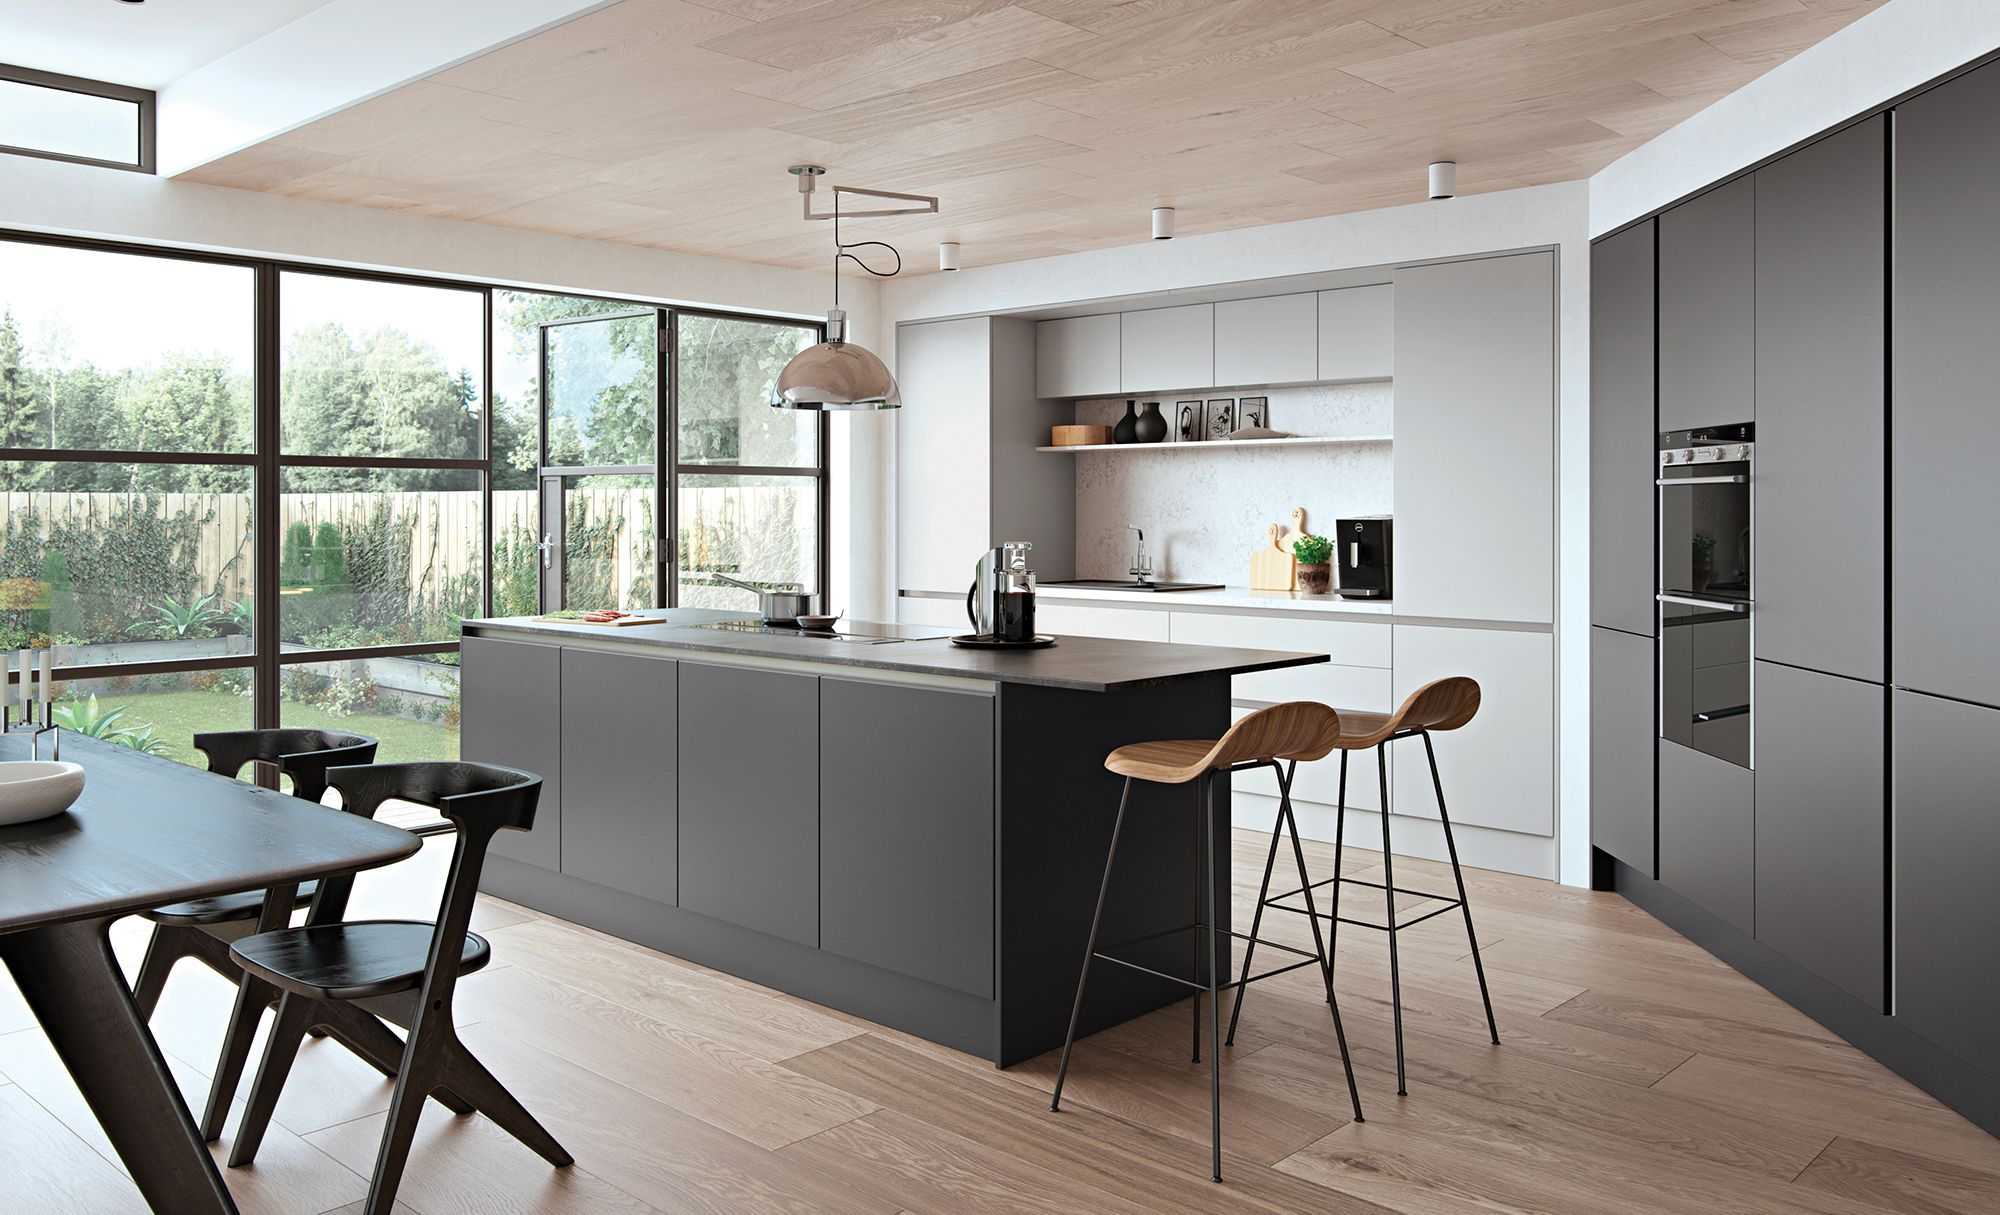 Nice A Striking Contemporary Kitchen Using A Combination Of Light Grey For The  Wall Units And A Contrasting Graphite Shade For The Kitchen Island Unit And  Wall ...